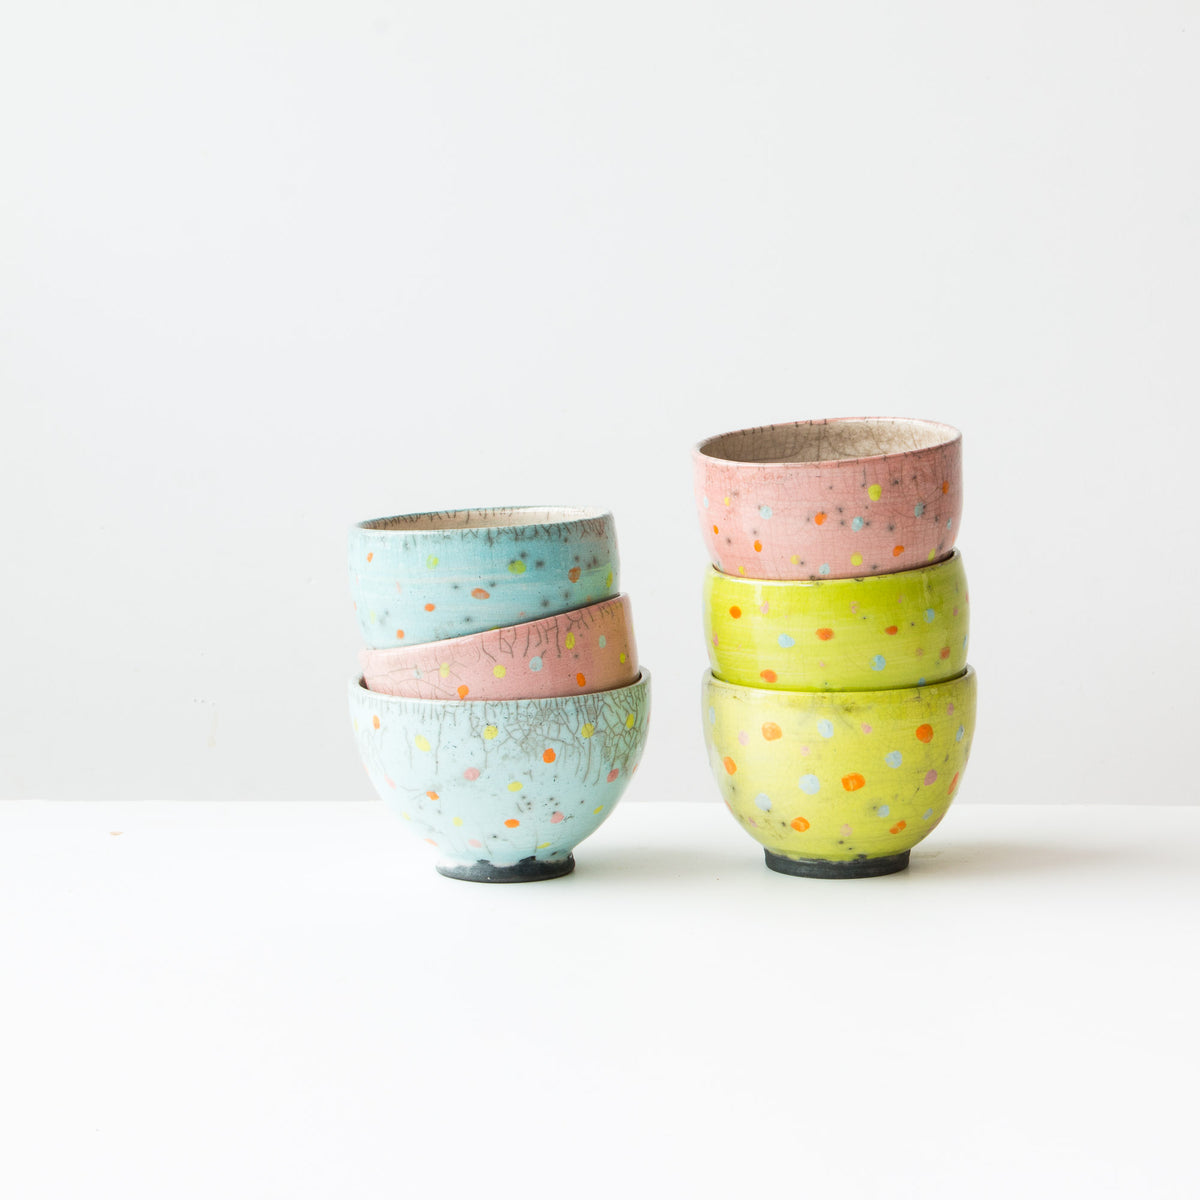 Pastel Colour Lime Handmade Raku Tea Bowls with Dots - Sold by Chic & Basta